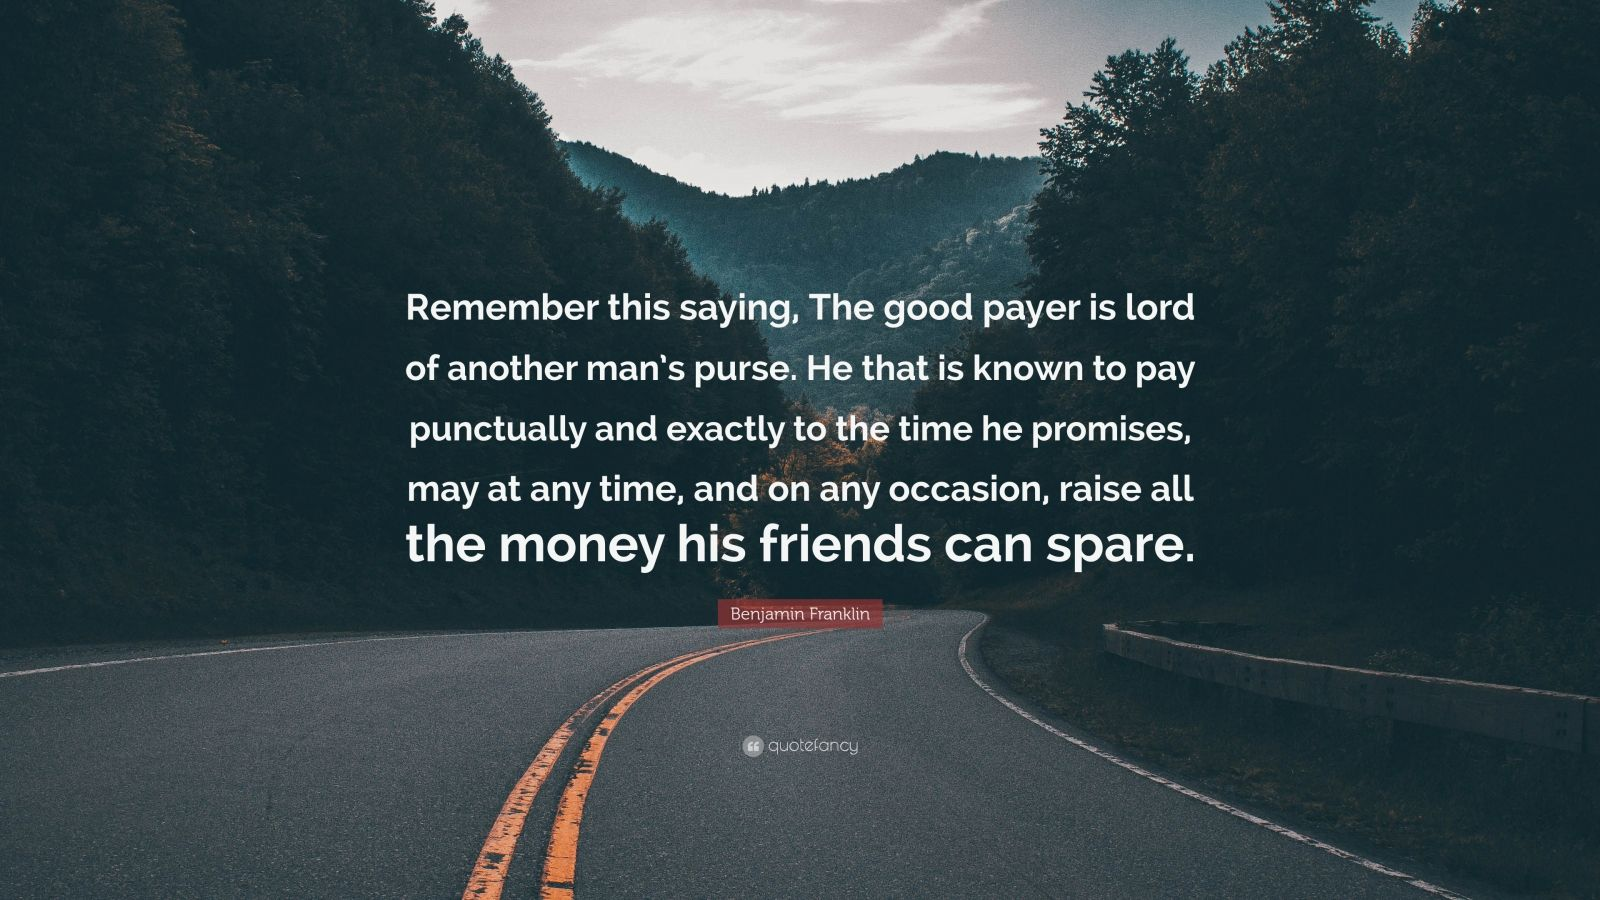 """Benjamin Franklin Quote: """"Remember this saying, The good payer is lord of another man's purse. He that is known to pay punctually and exactly to the time he promises, may at any time, and on any occasion, raise all the money his friends can spare."""""""